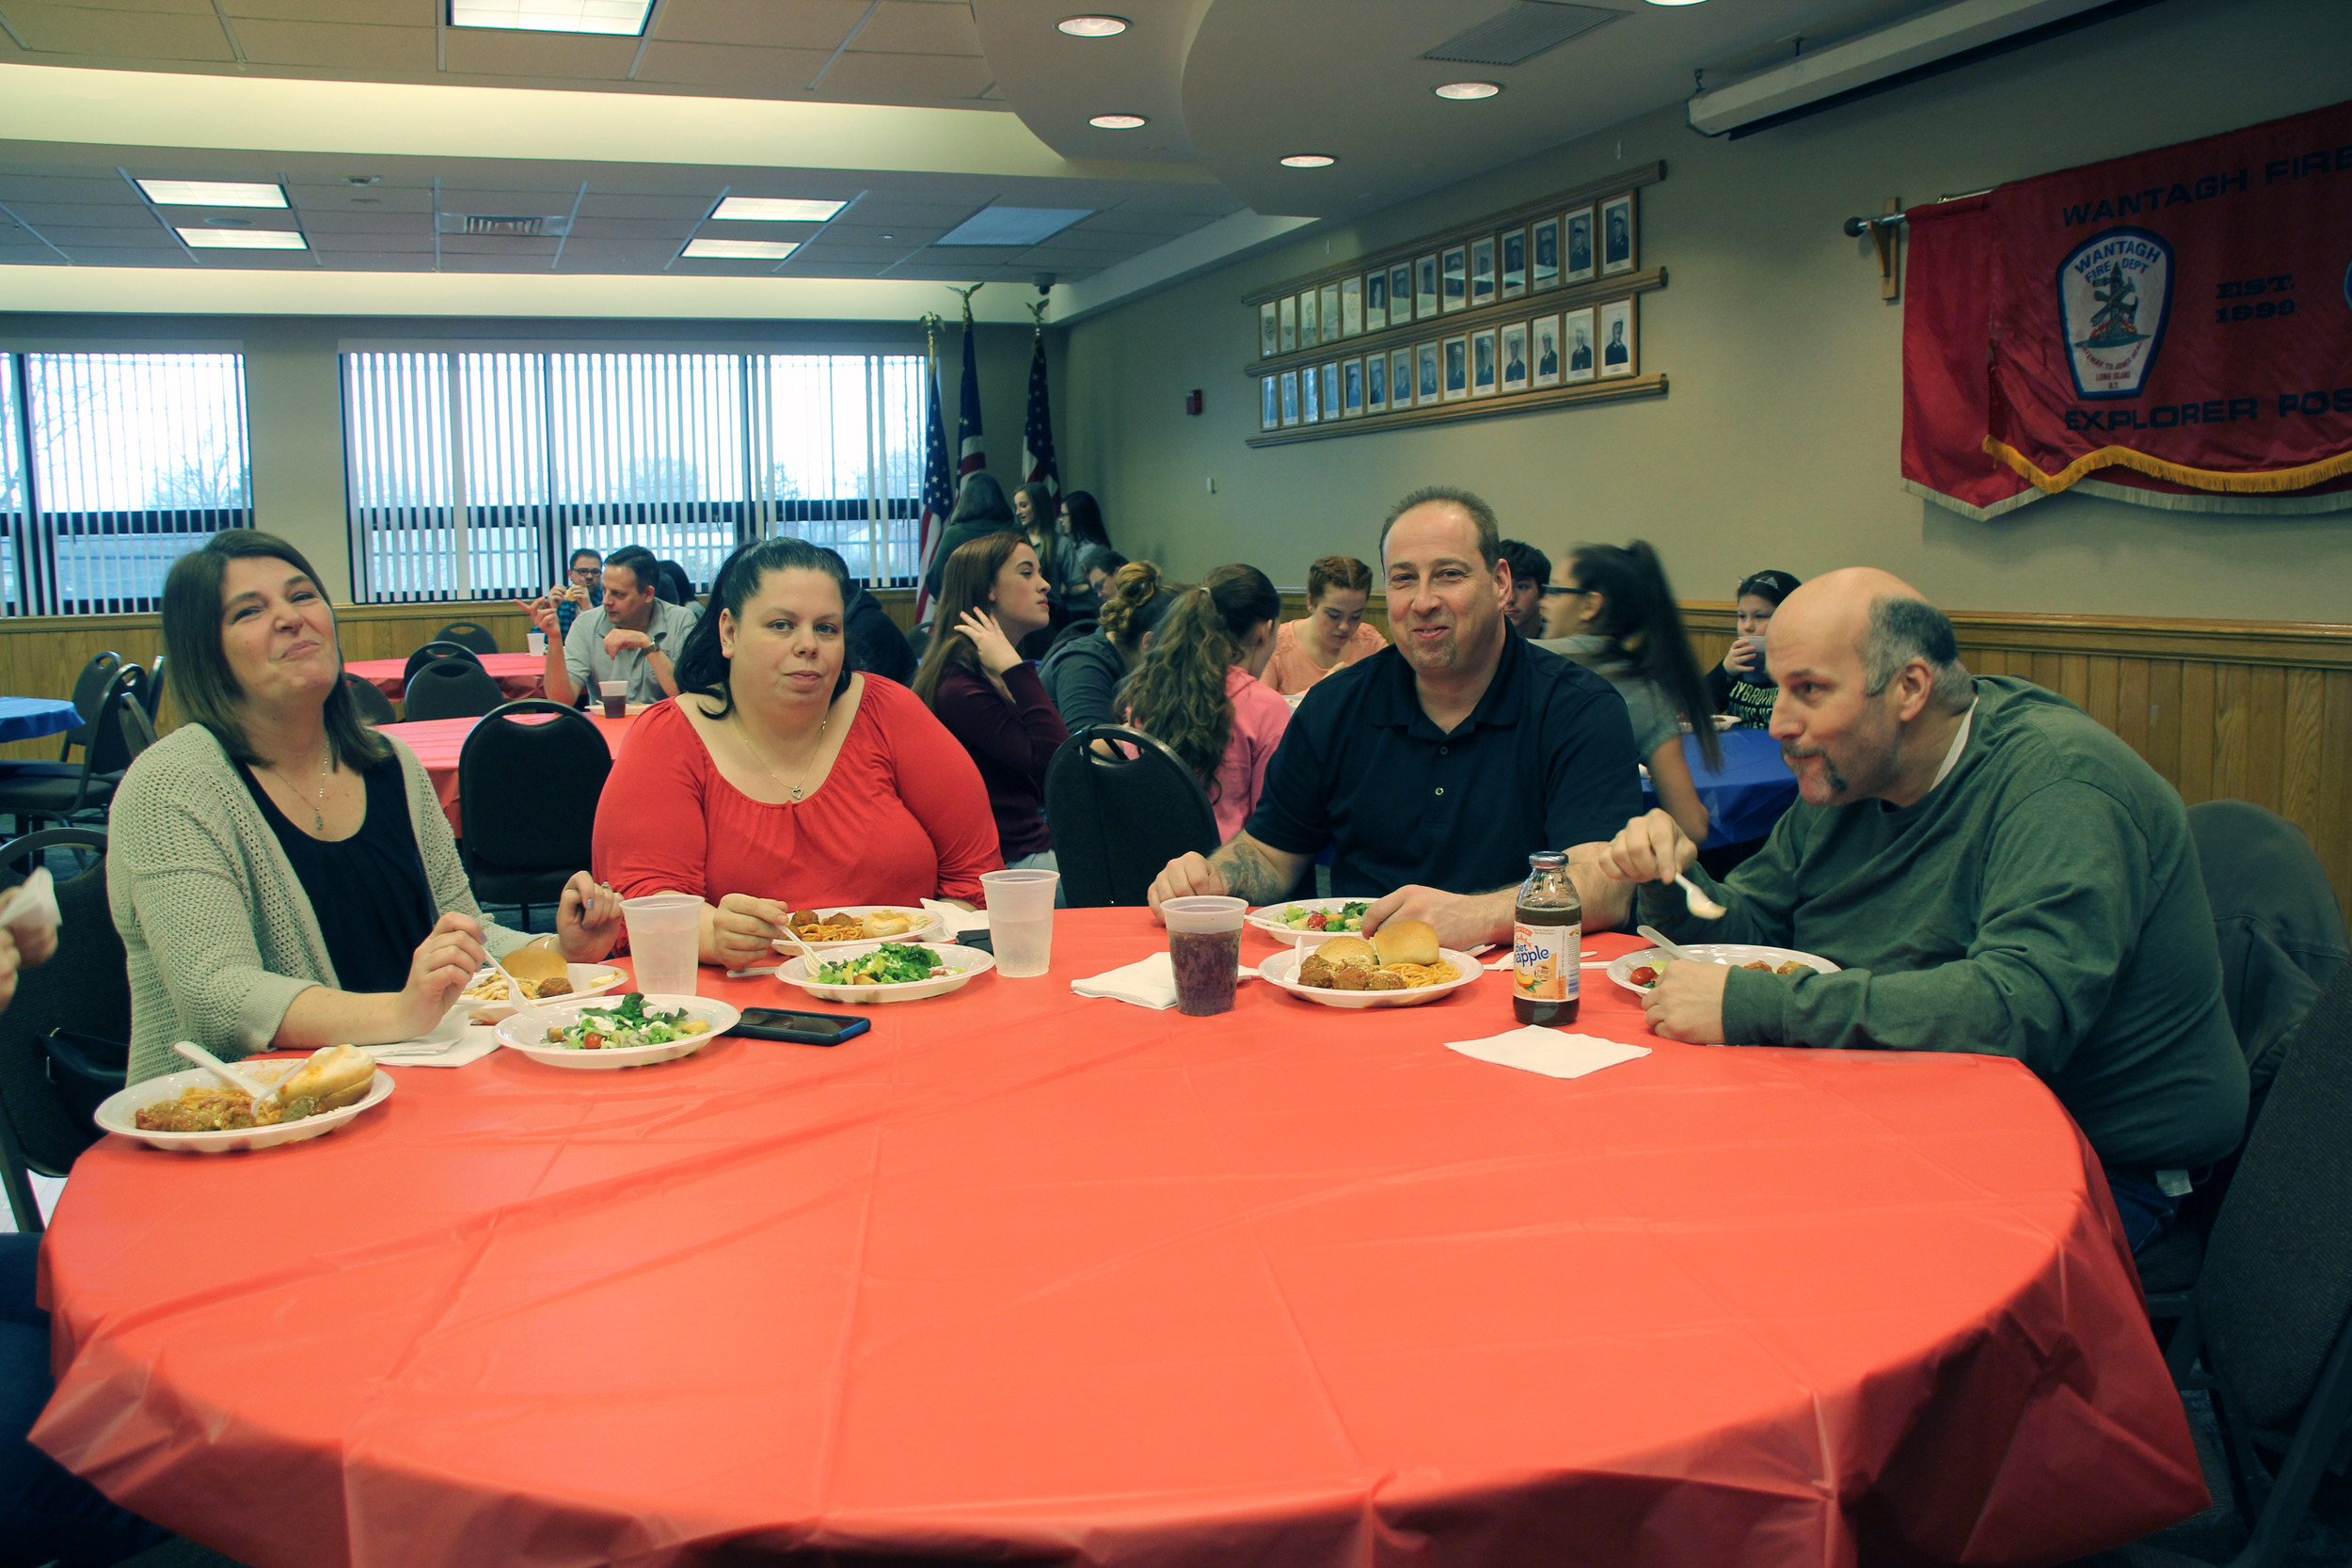 Wantagh, Seaford and Levittown residents attended the fundraiser.